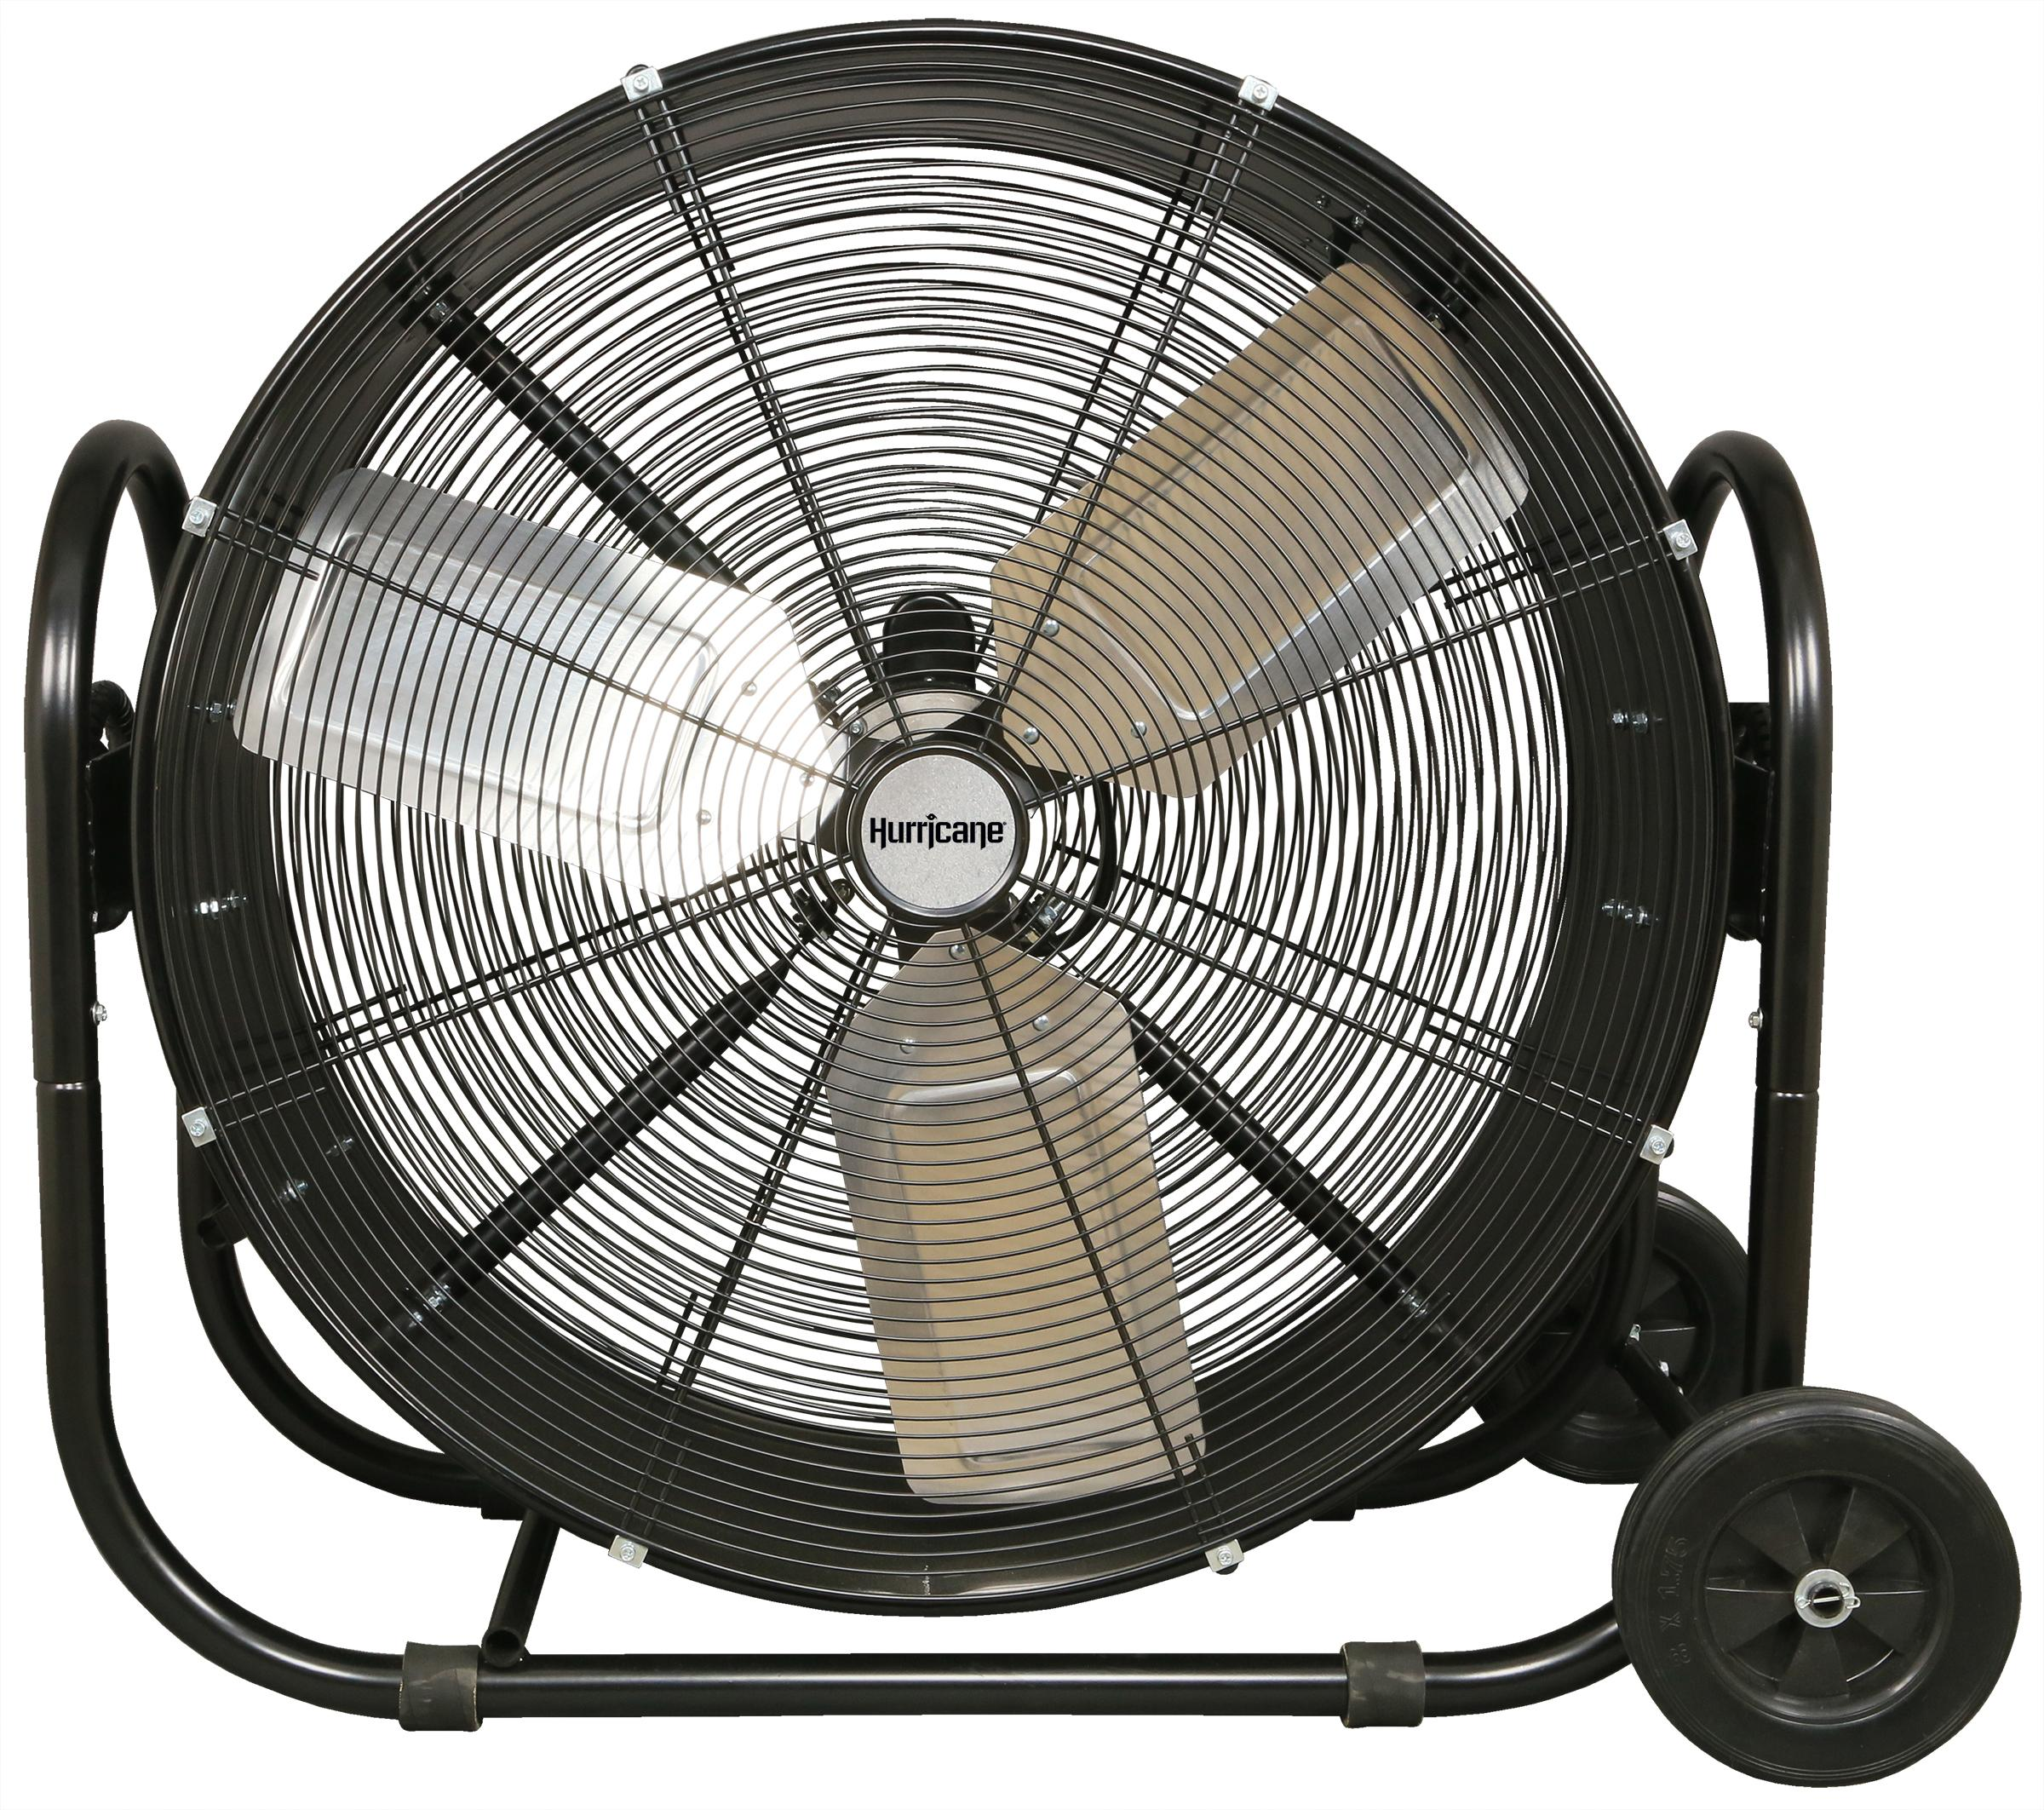 Heavy Duty Fan >> Hurricane Pro Heavy Duty Adjustable Tilt Drum Fan 30 In